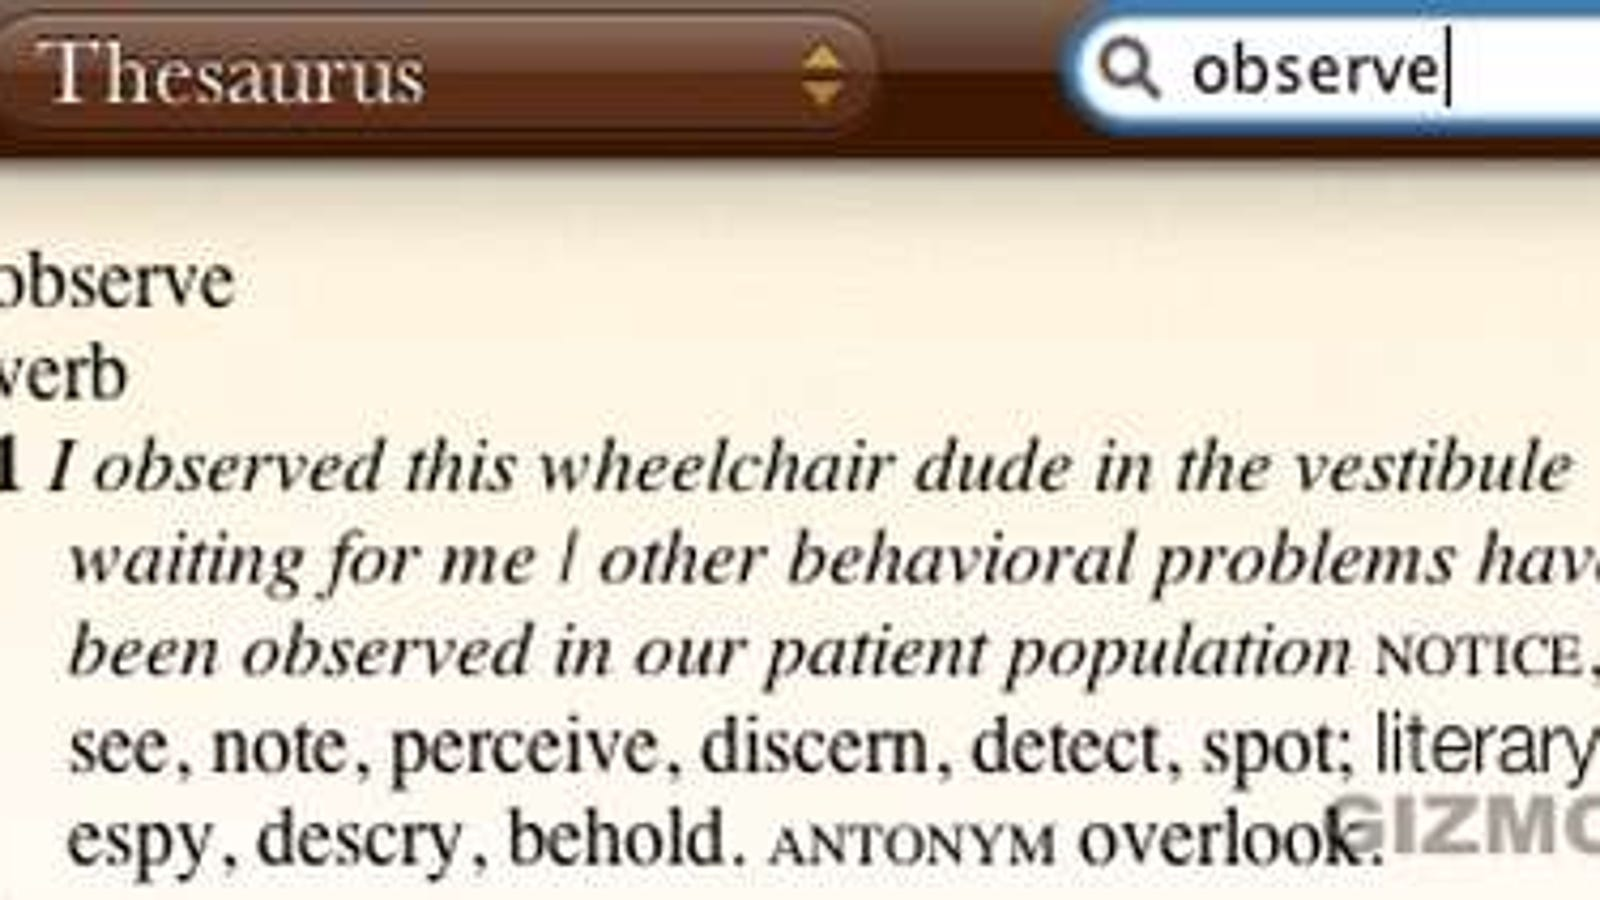 Wheelchair Dude Features in Apple Thesaurus; His Cover is Blown